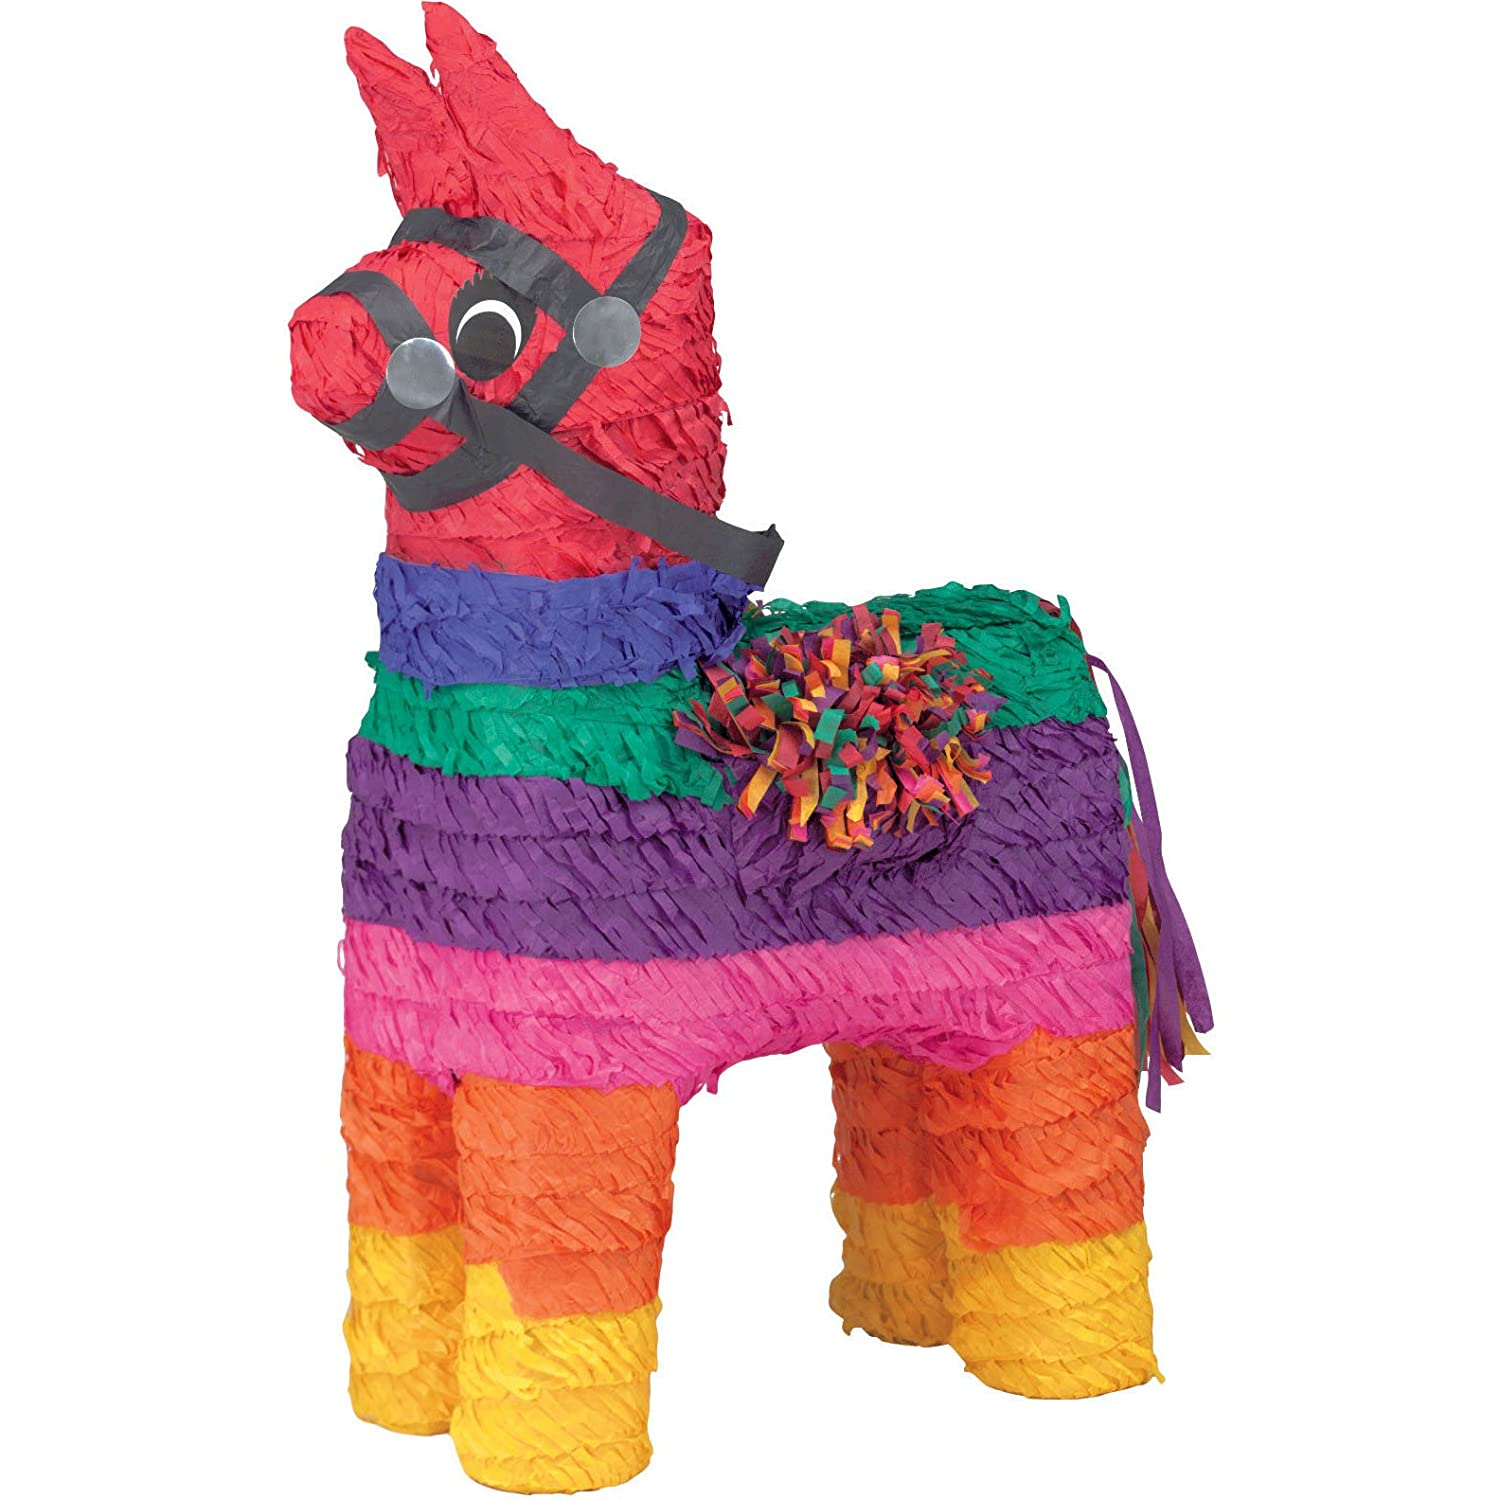 Image result for images of pinatas